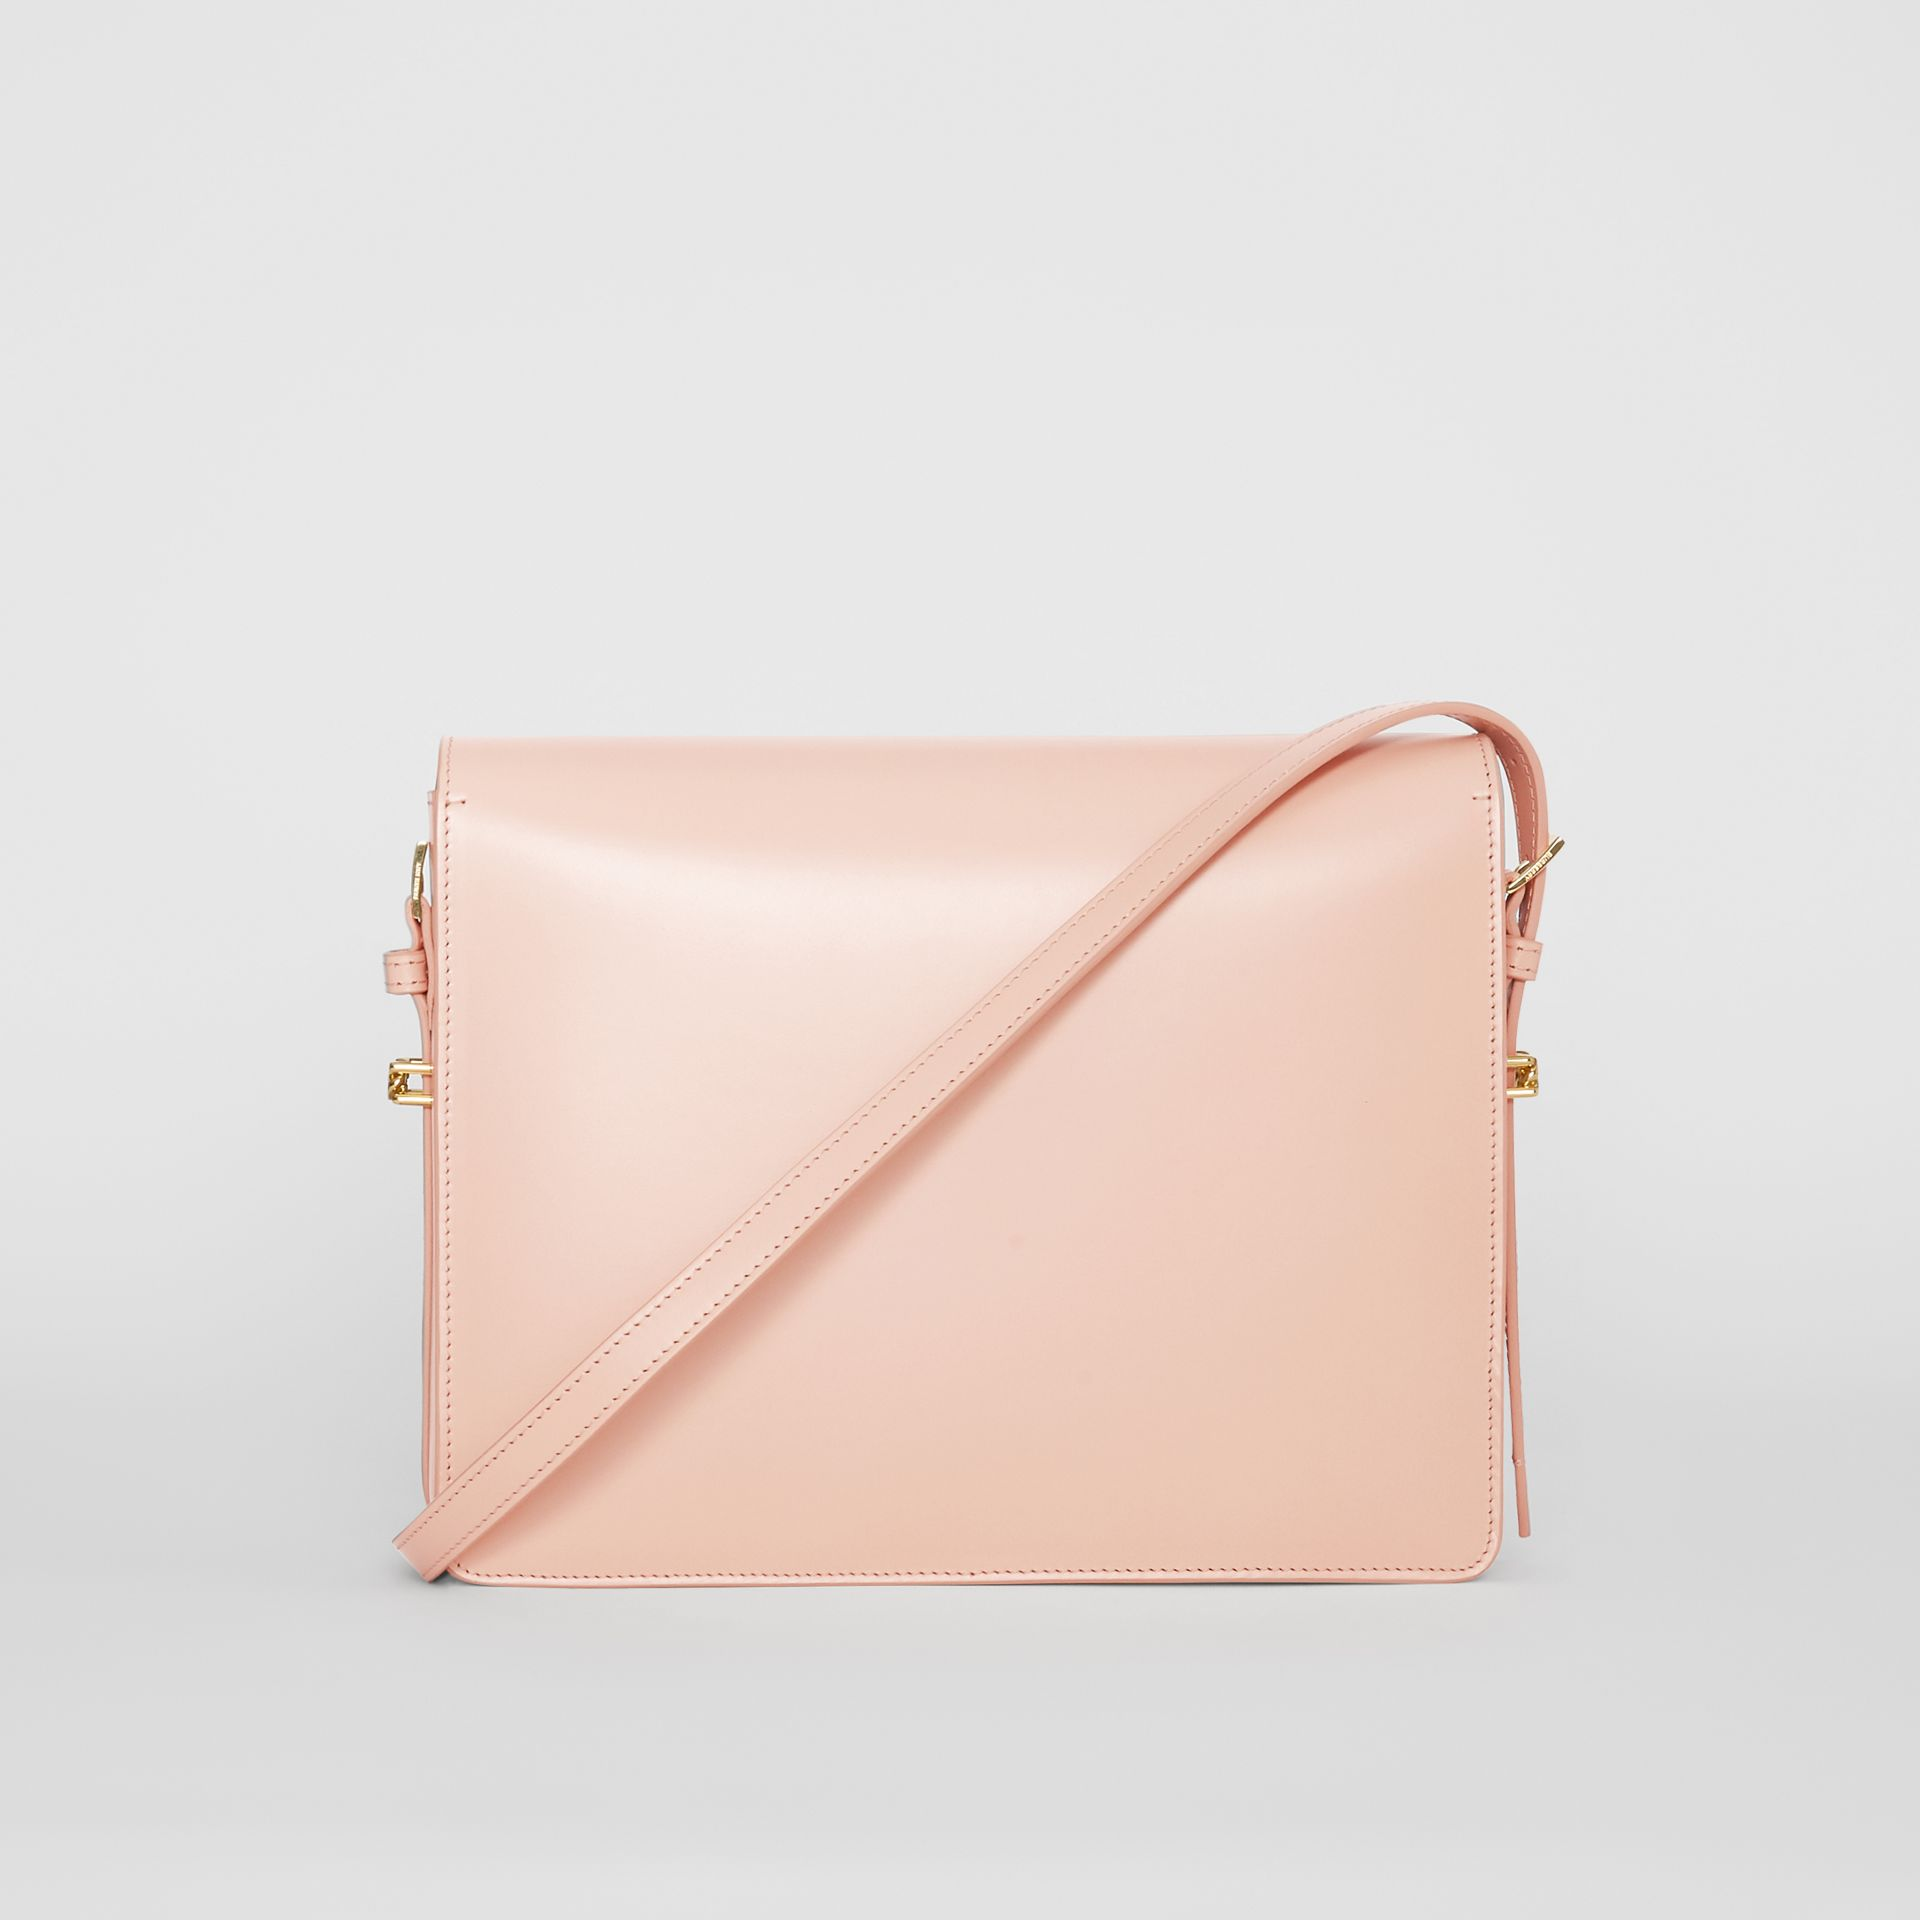 Large Leather Grace Bag in Soft Blush - Women | Burberry - gallery image 7